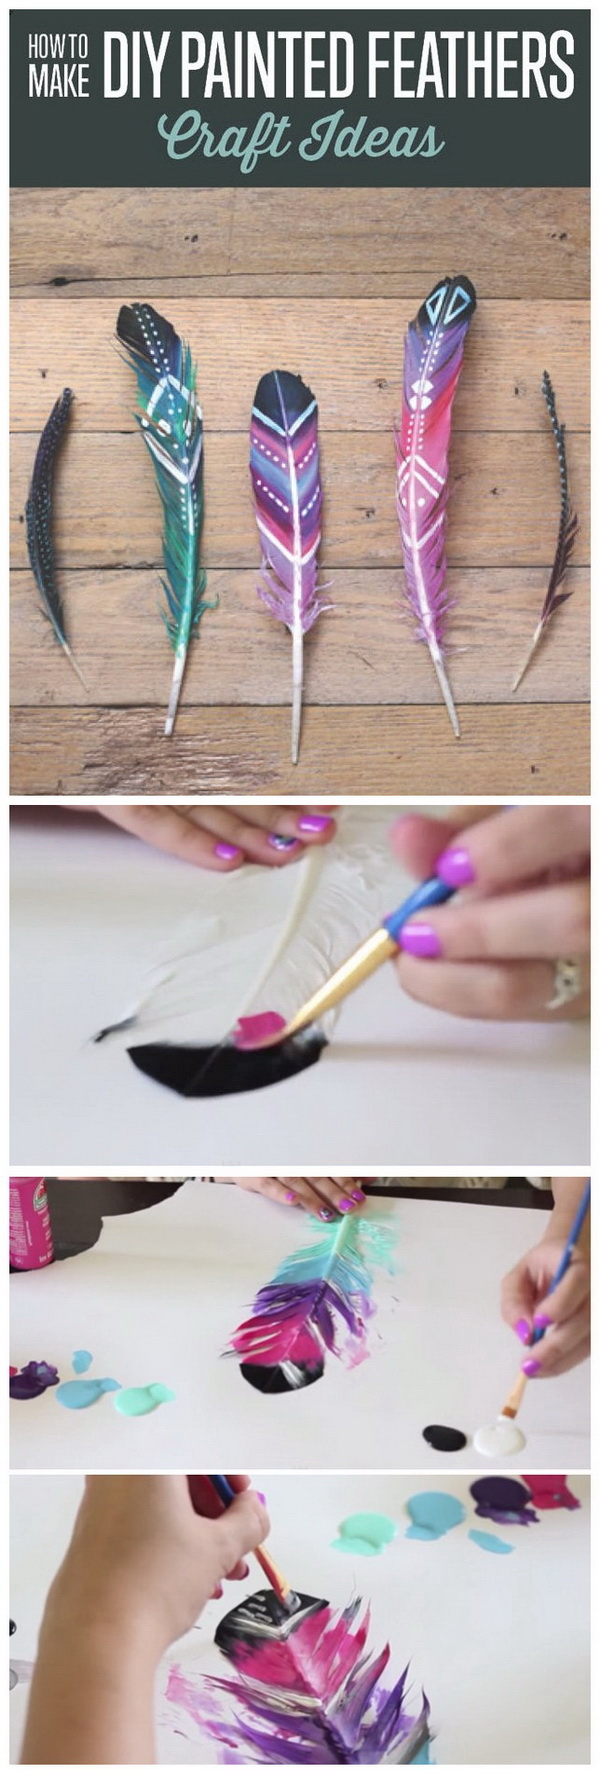 For Teenagers Diy Crafts 40 Picttures Ideas Diy Craft